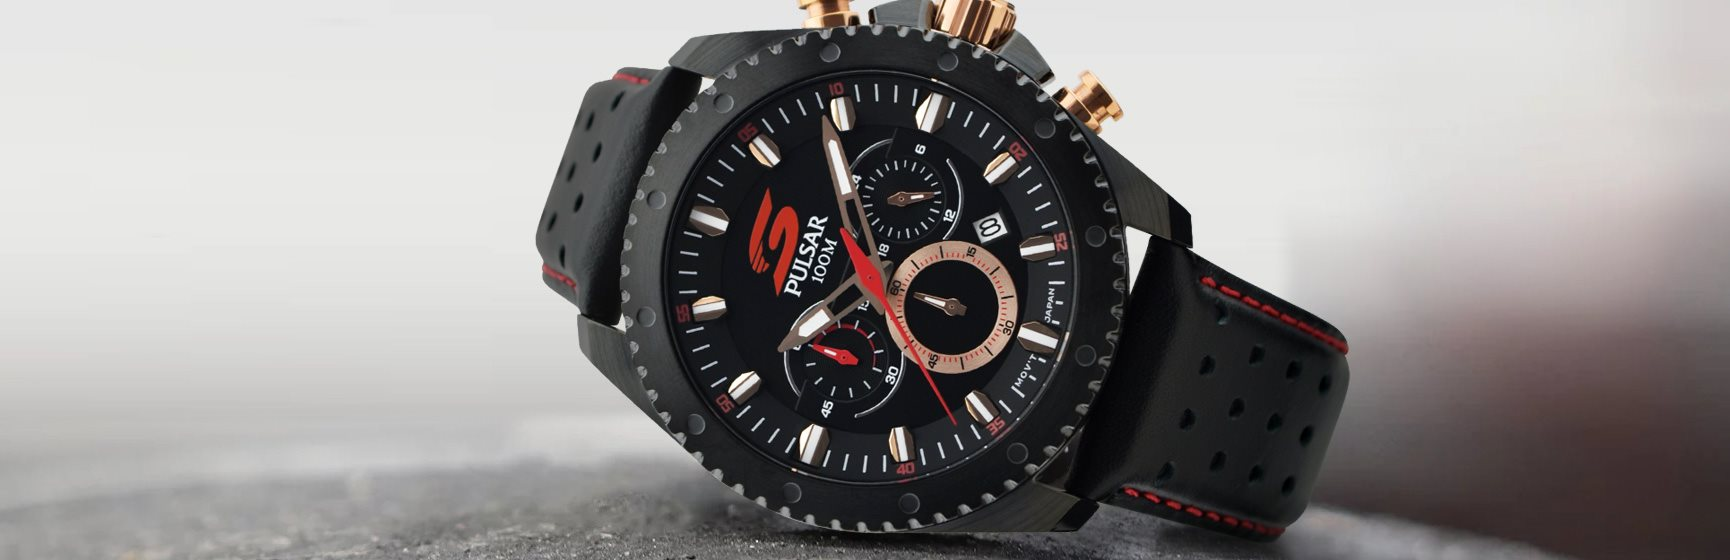 a9e19b69 Pulsar Watches - Tell it your way